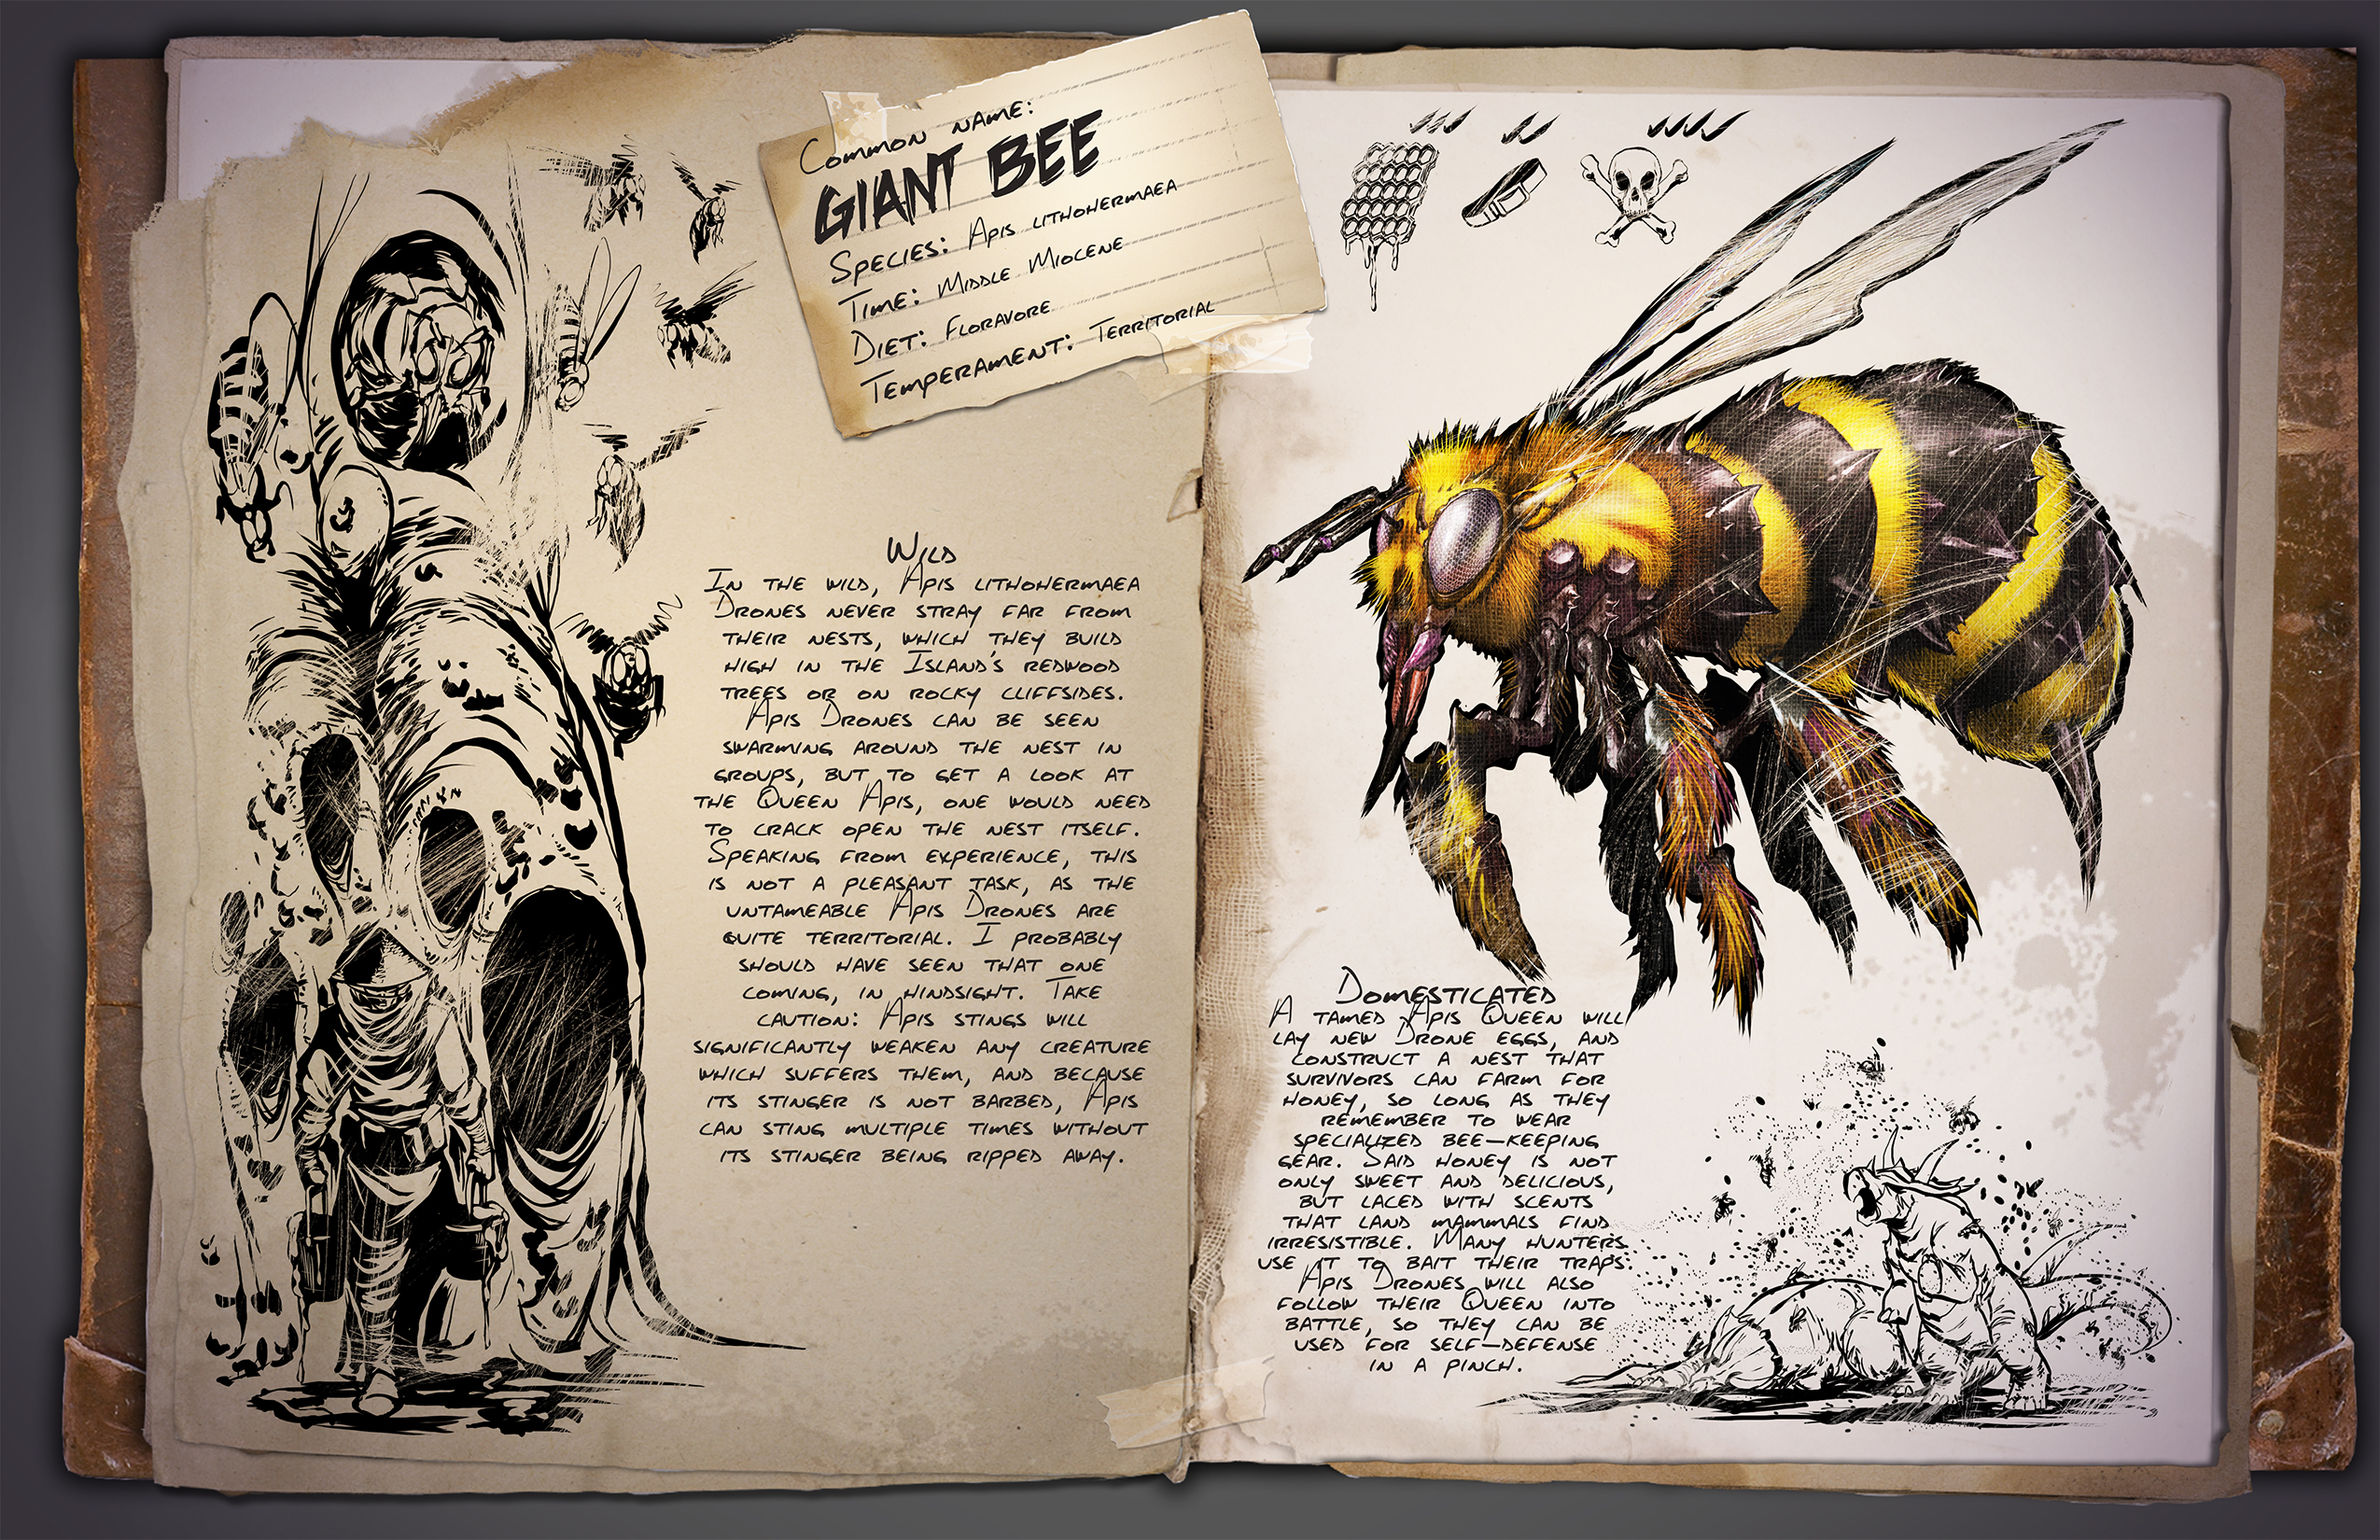 Sep 20, 2016 Introducing the Giant Bee! ARK: Survival Evolved - Jat